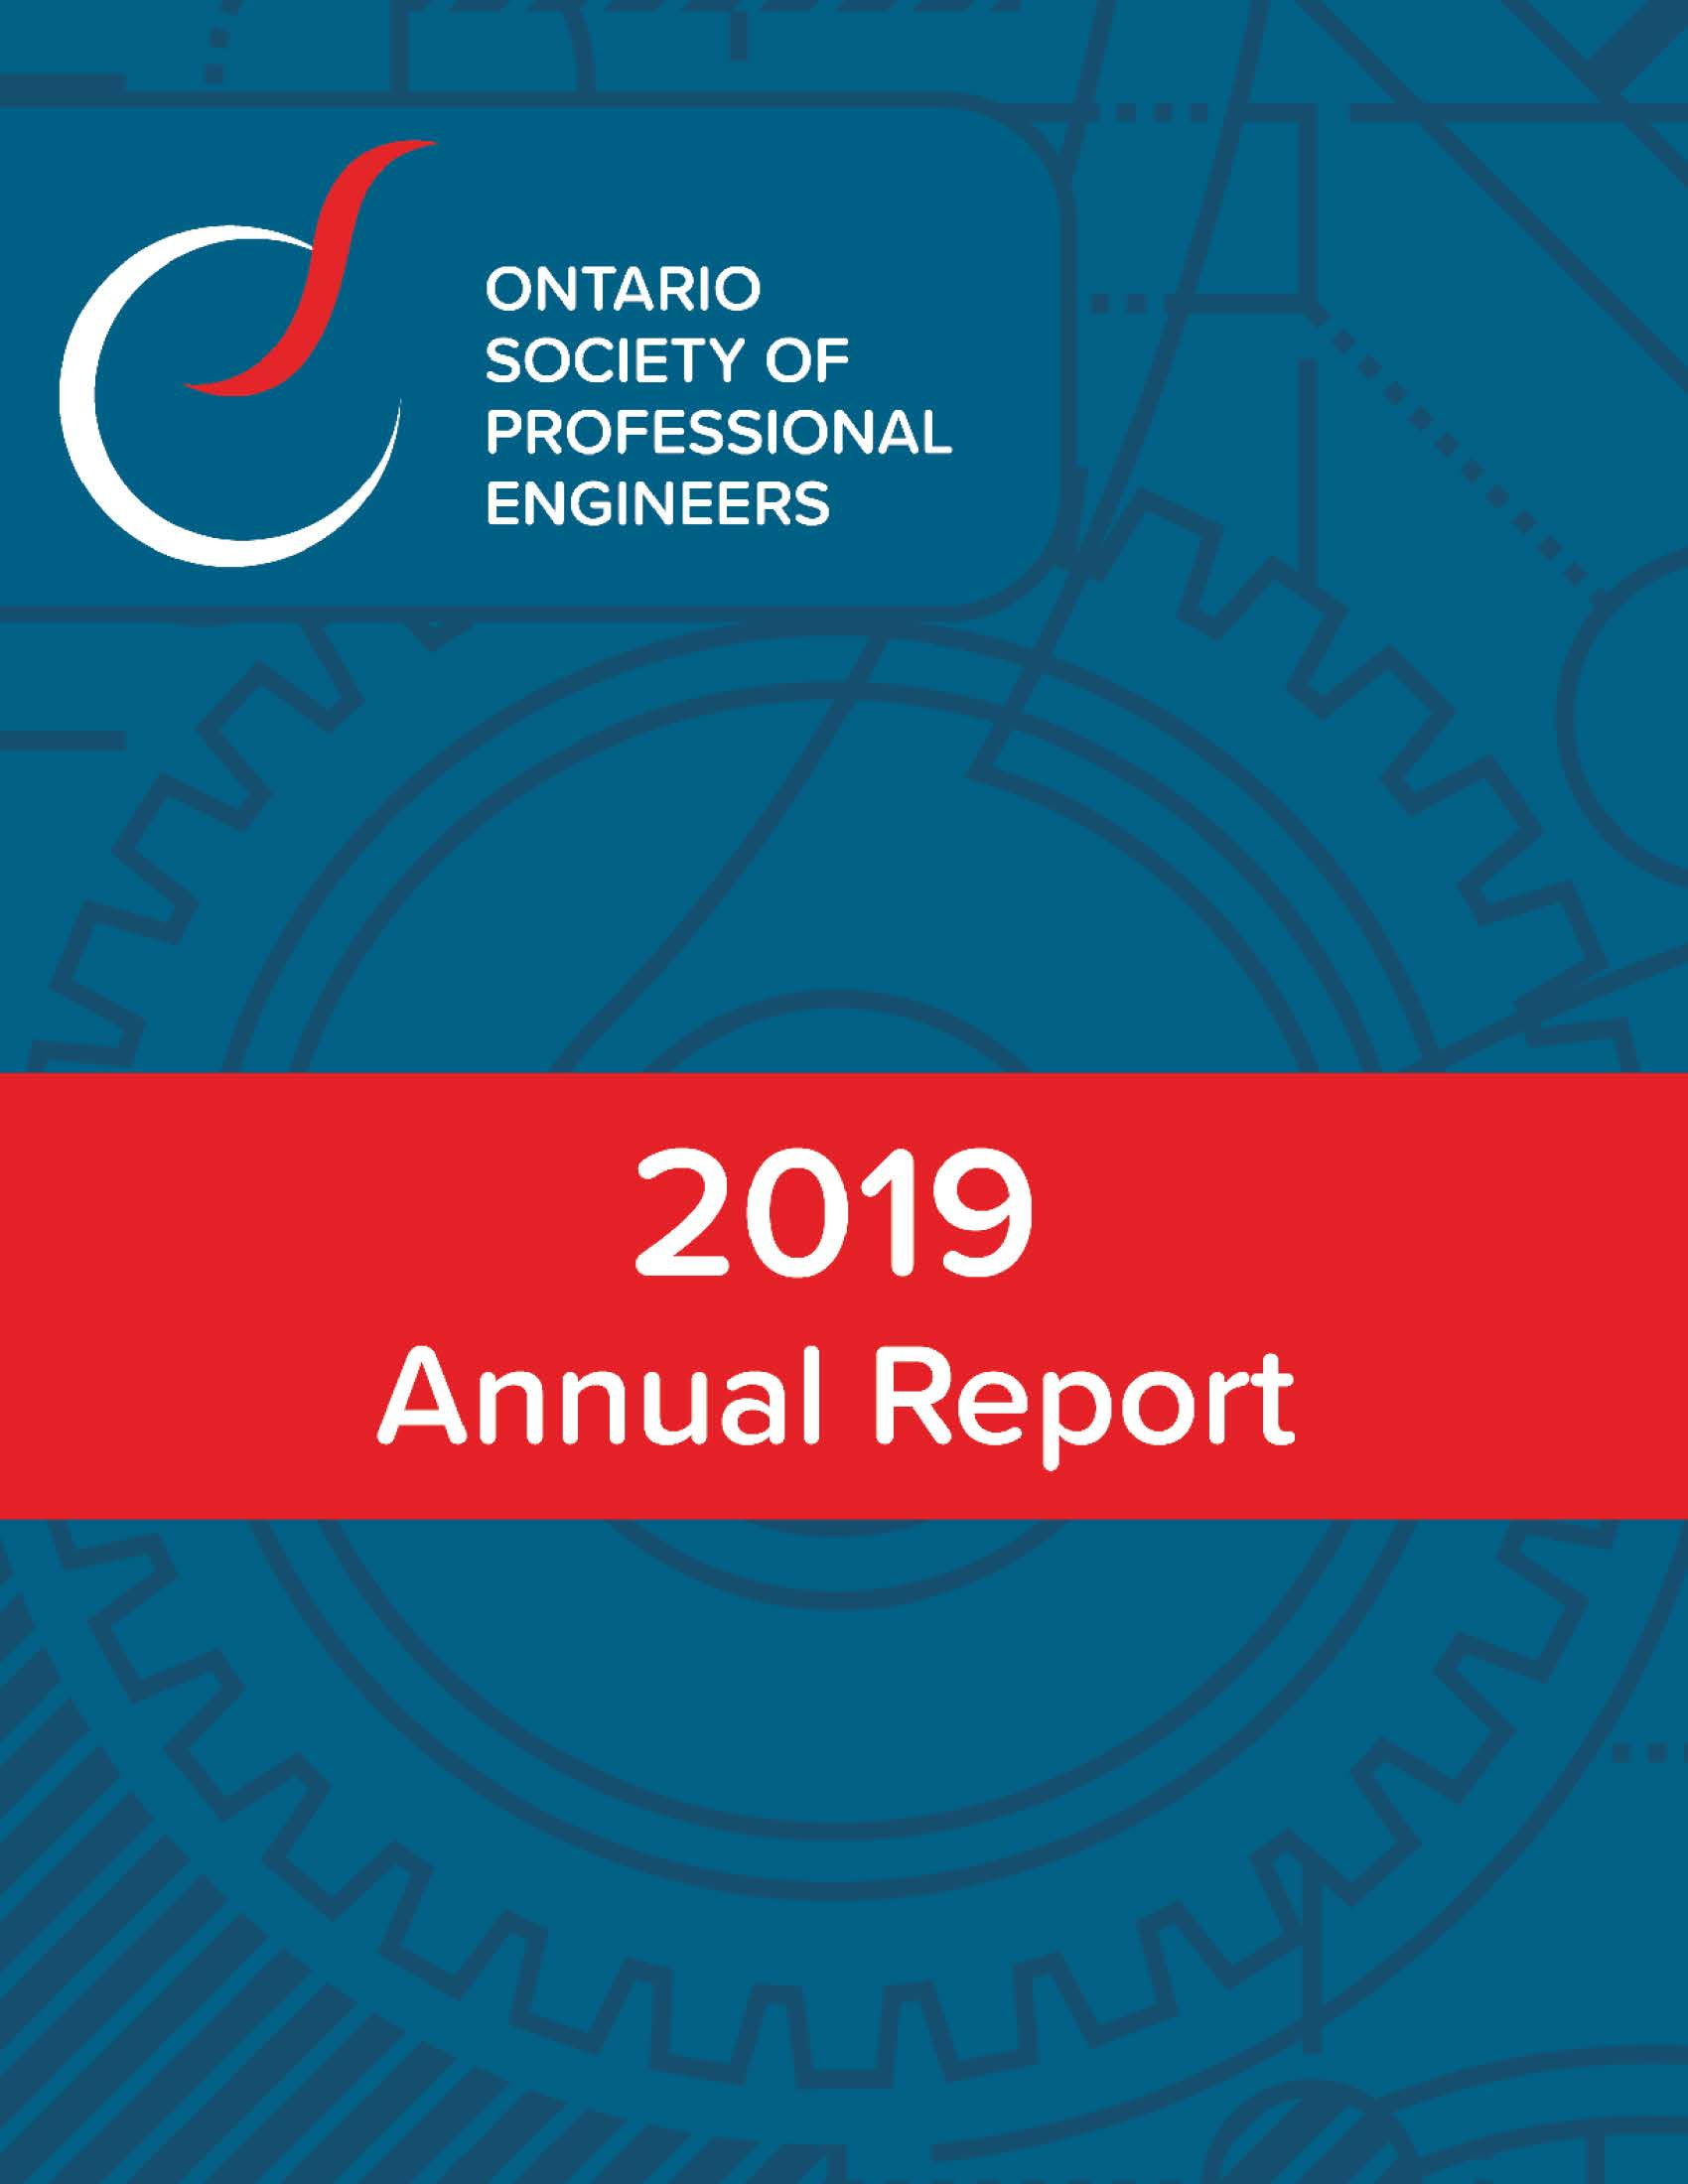 Ontario Society of Professional Engineers - 2019 Annual Report